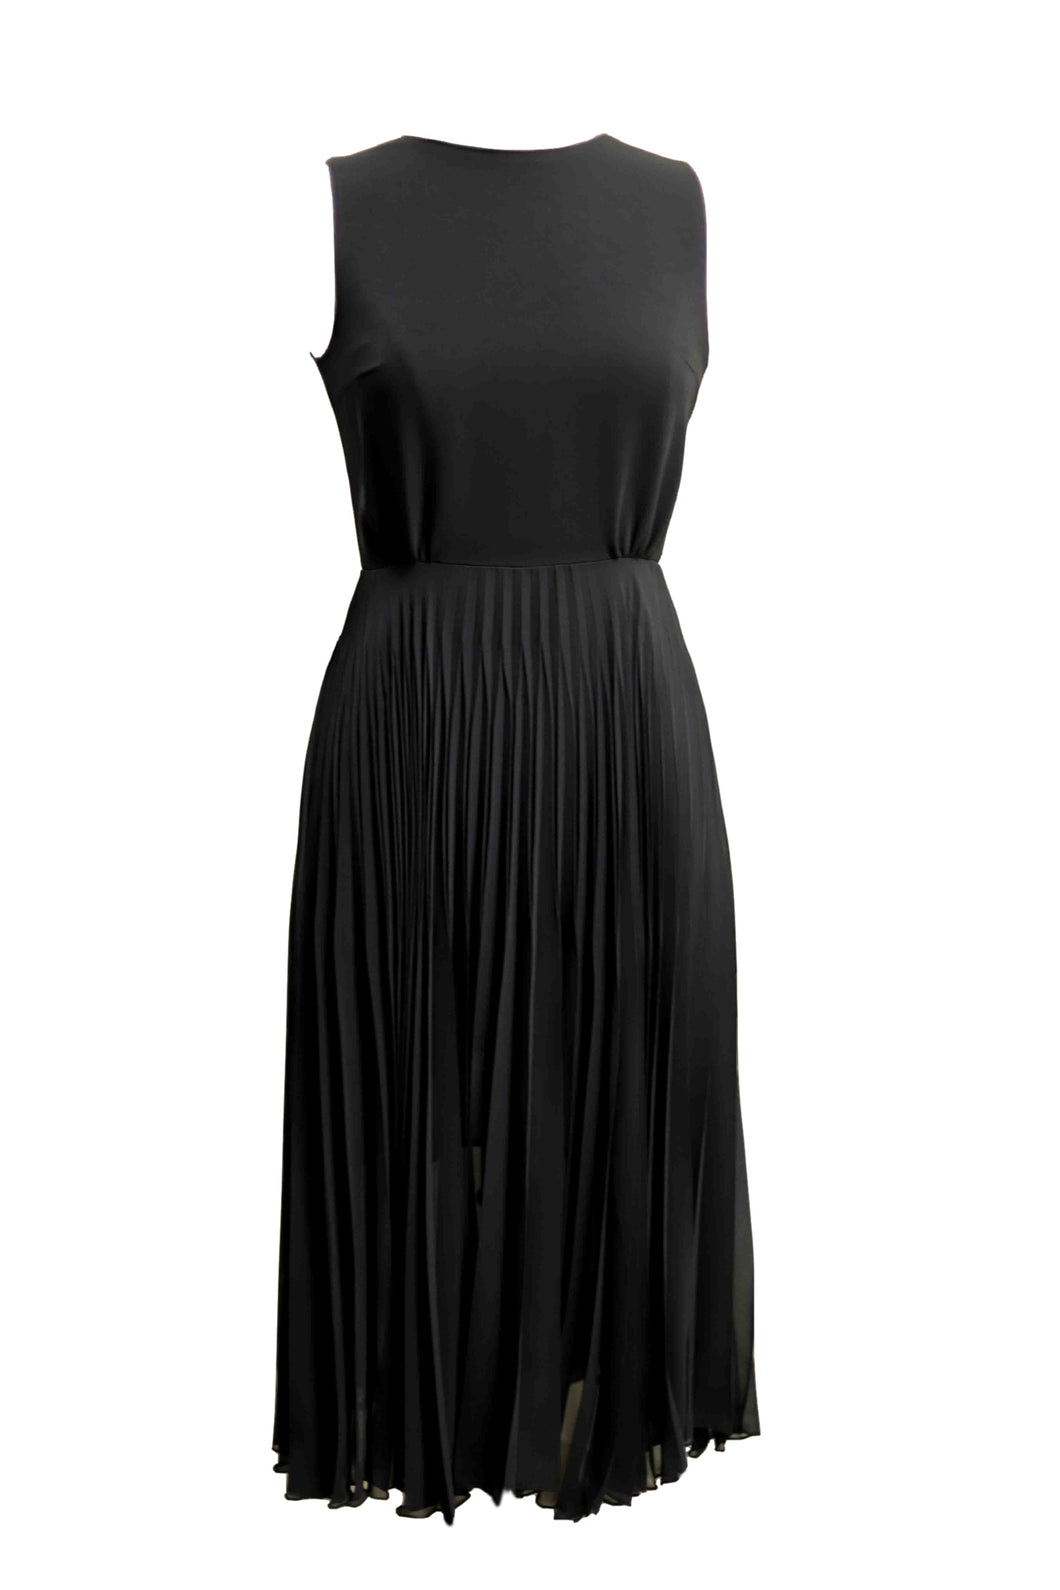 Cutout Black Midi Dress